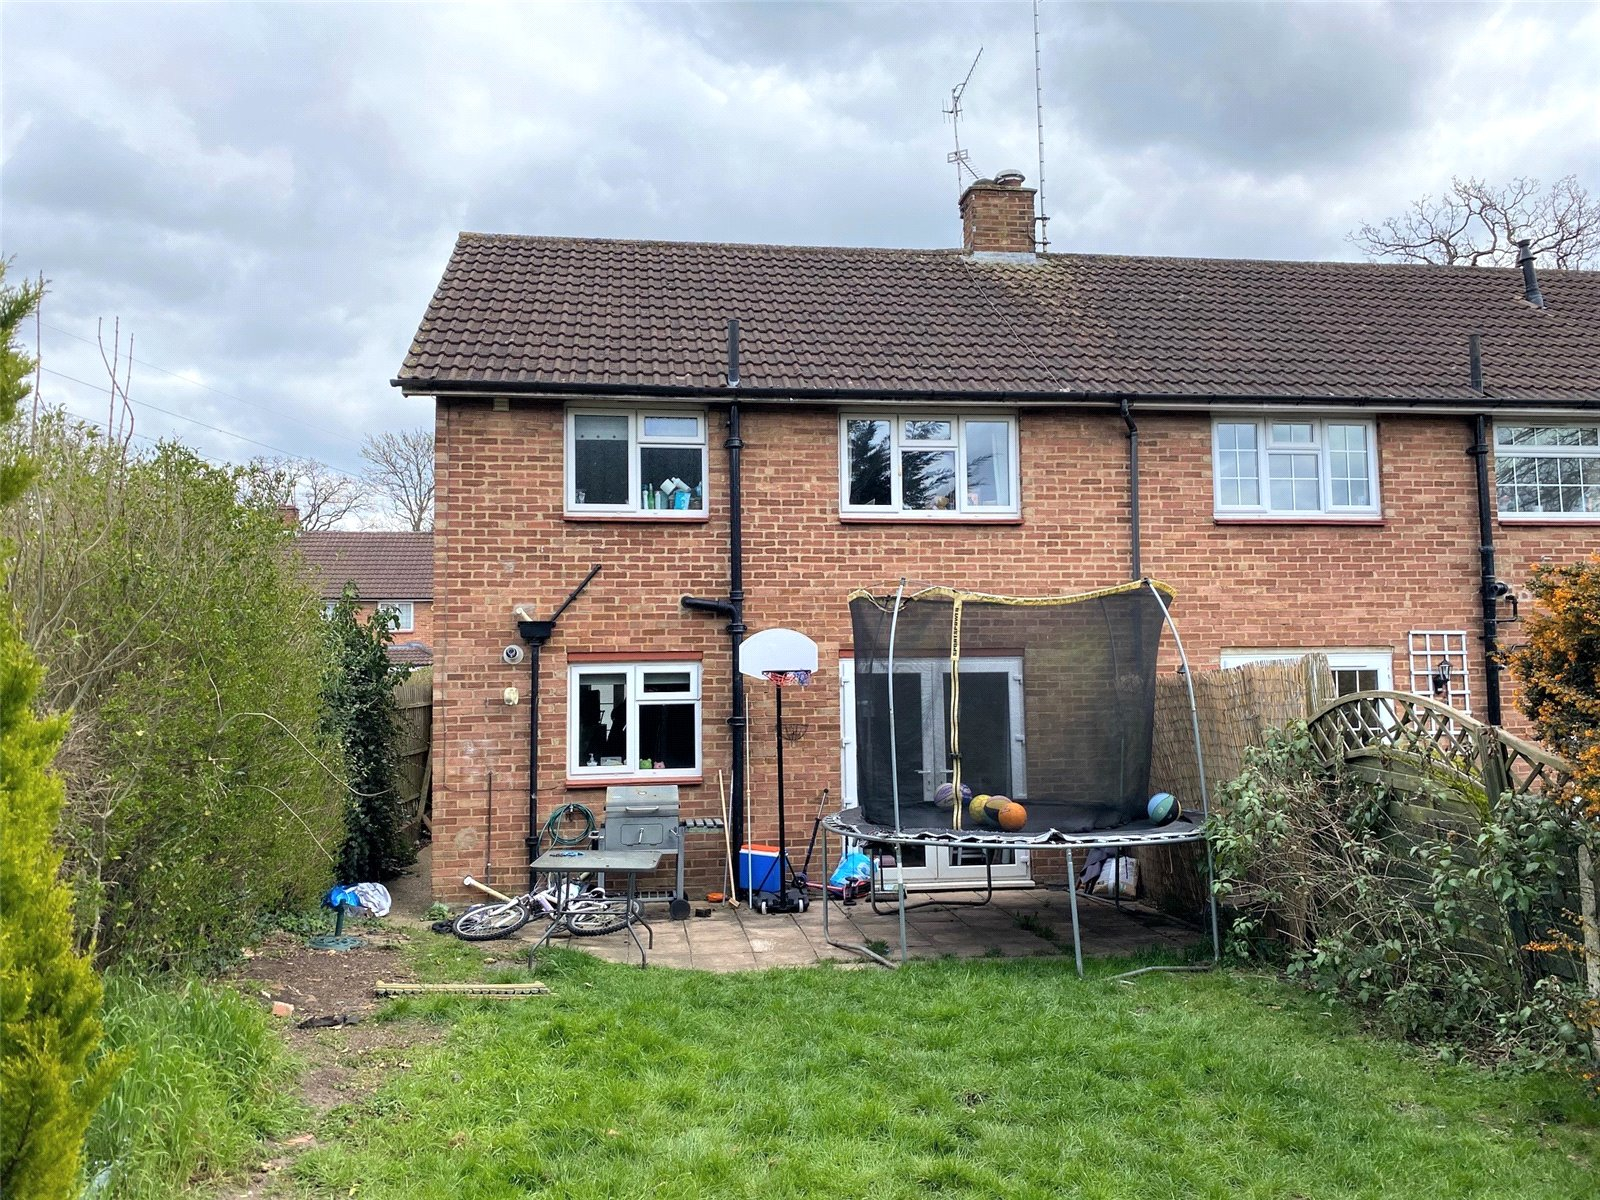 3 bed house to rent in Bricket Wood, AL2 3NB 9